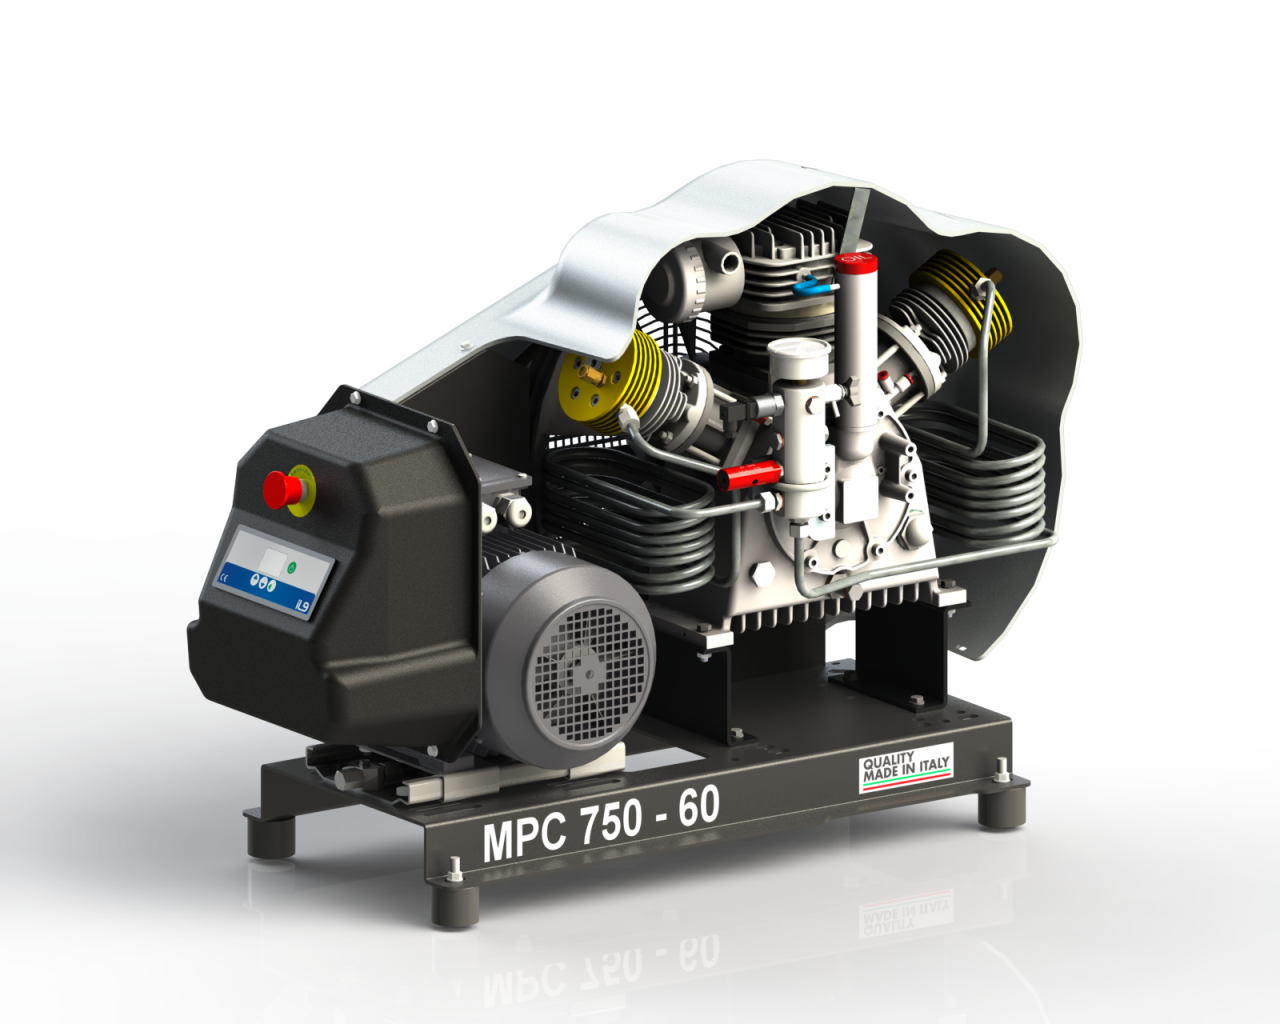 mpc-750-60-07.png